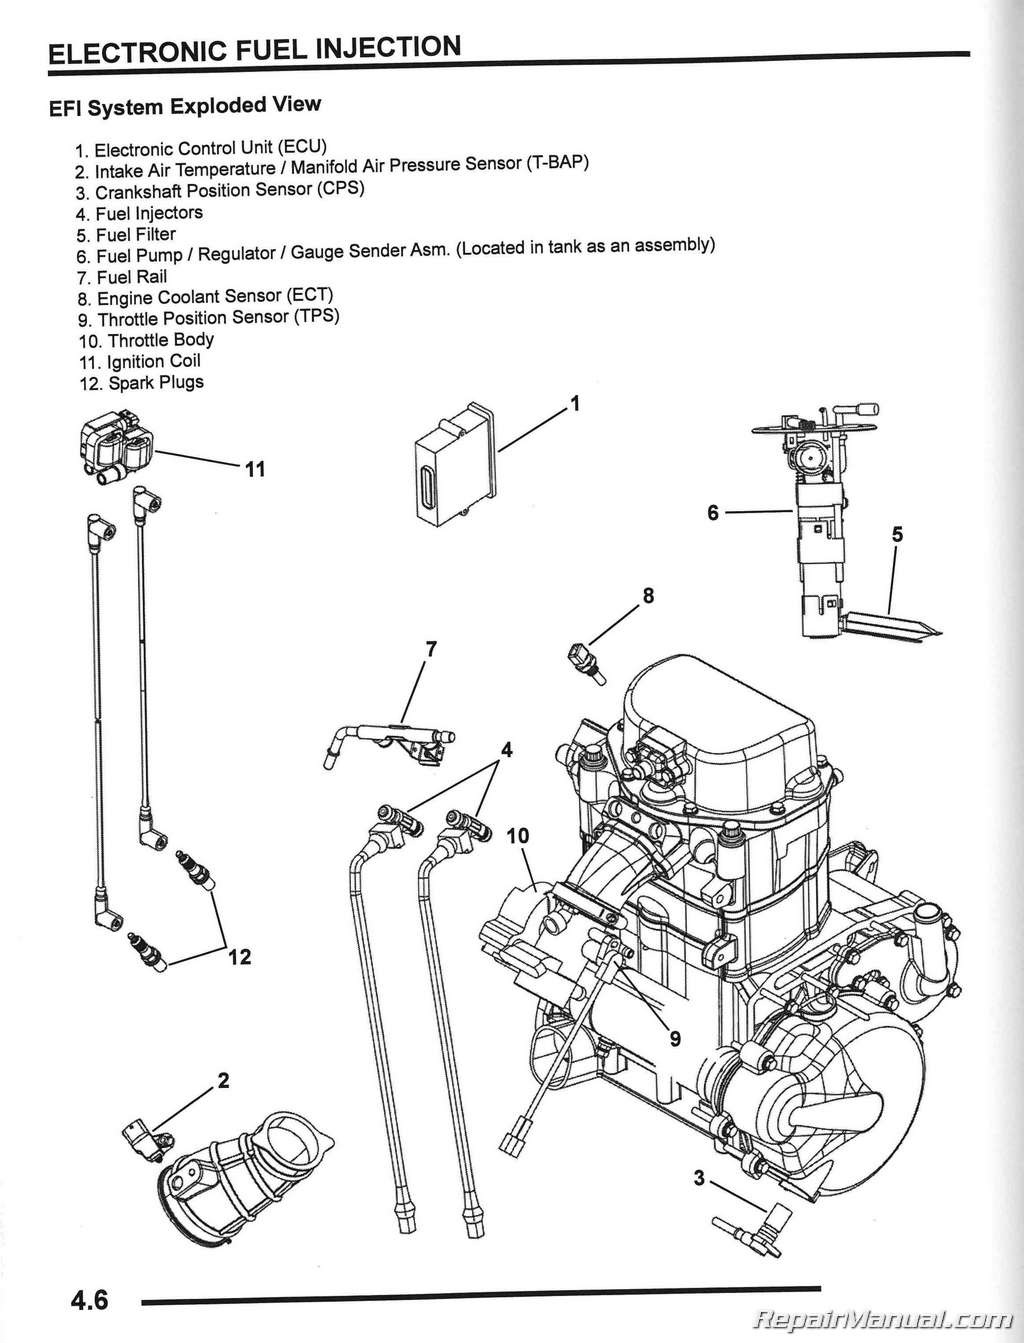 2010 polaris rzr 800 wiring diagram